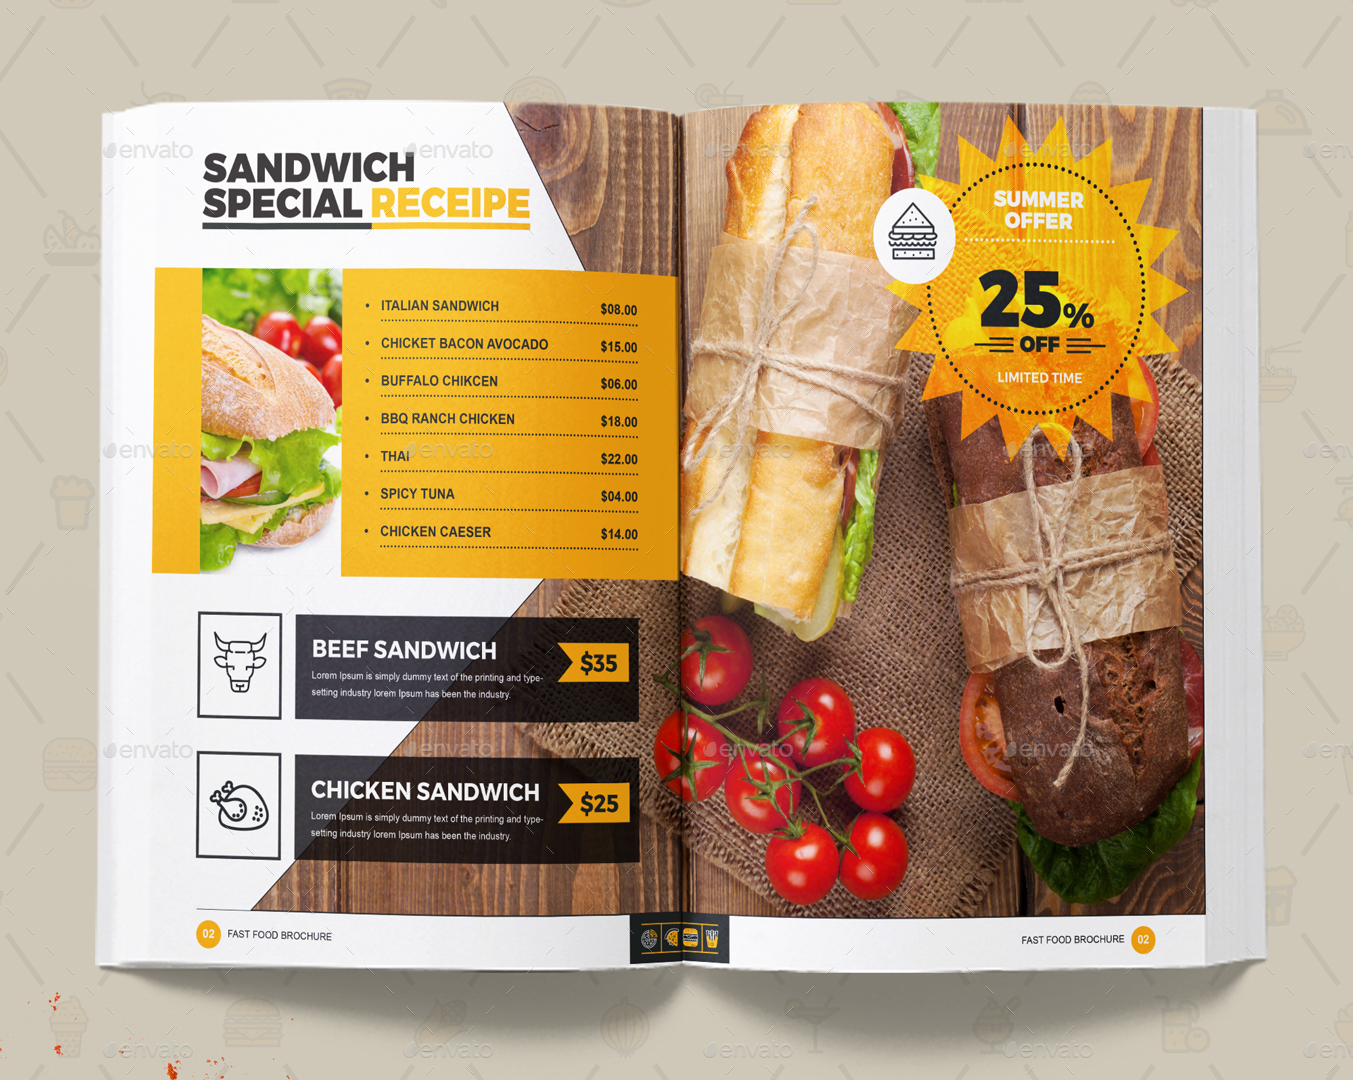 Attached Invoice Word Branding Identity For Fast Food  Restaurants  Cafe By Contestdesign Quickbooks Invoice Templates with Paypal Buyer Protection Invoice Word  Image Setsandwichspecialreceipejpg  Definition Of A Receipt Excel